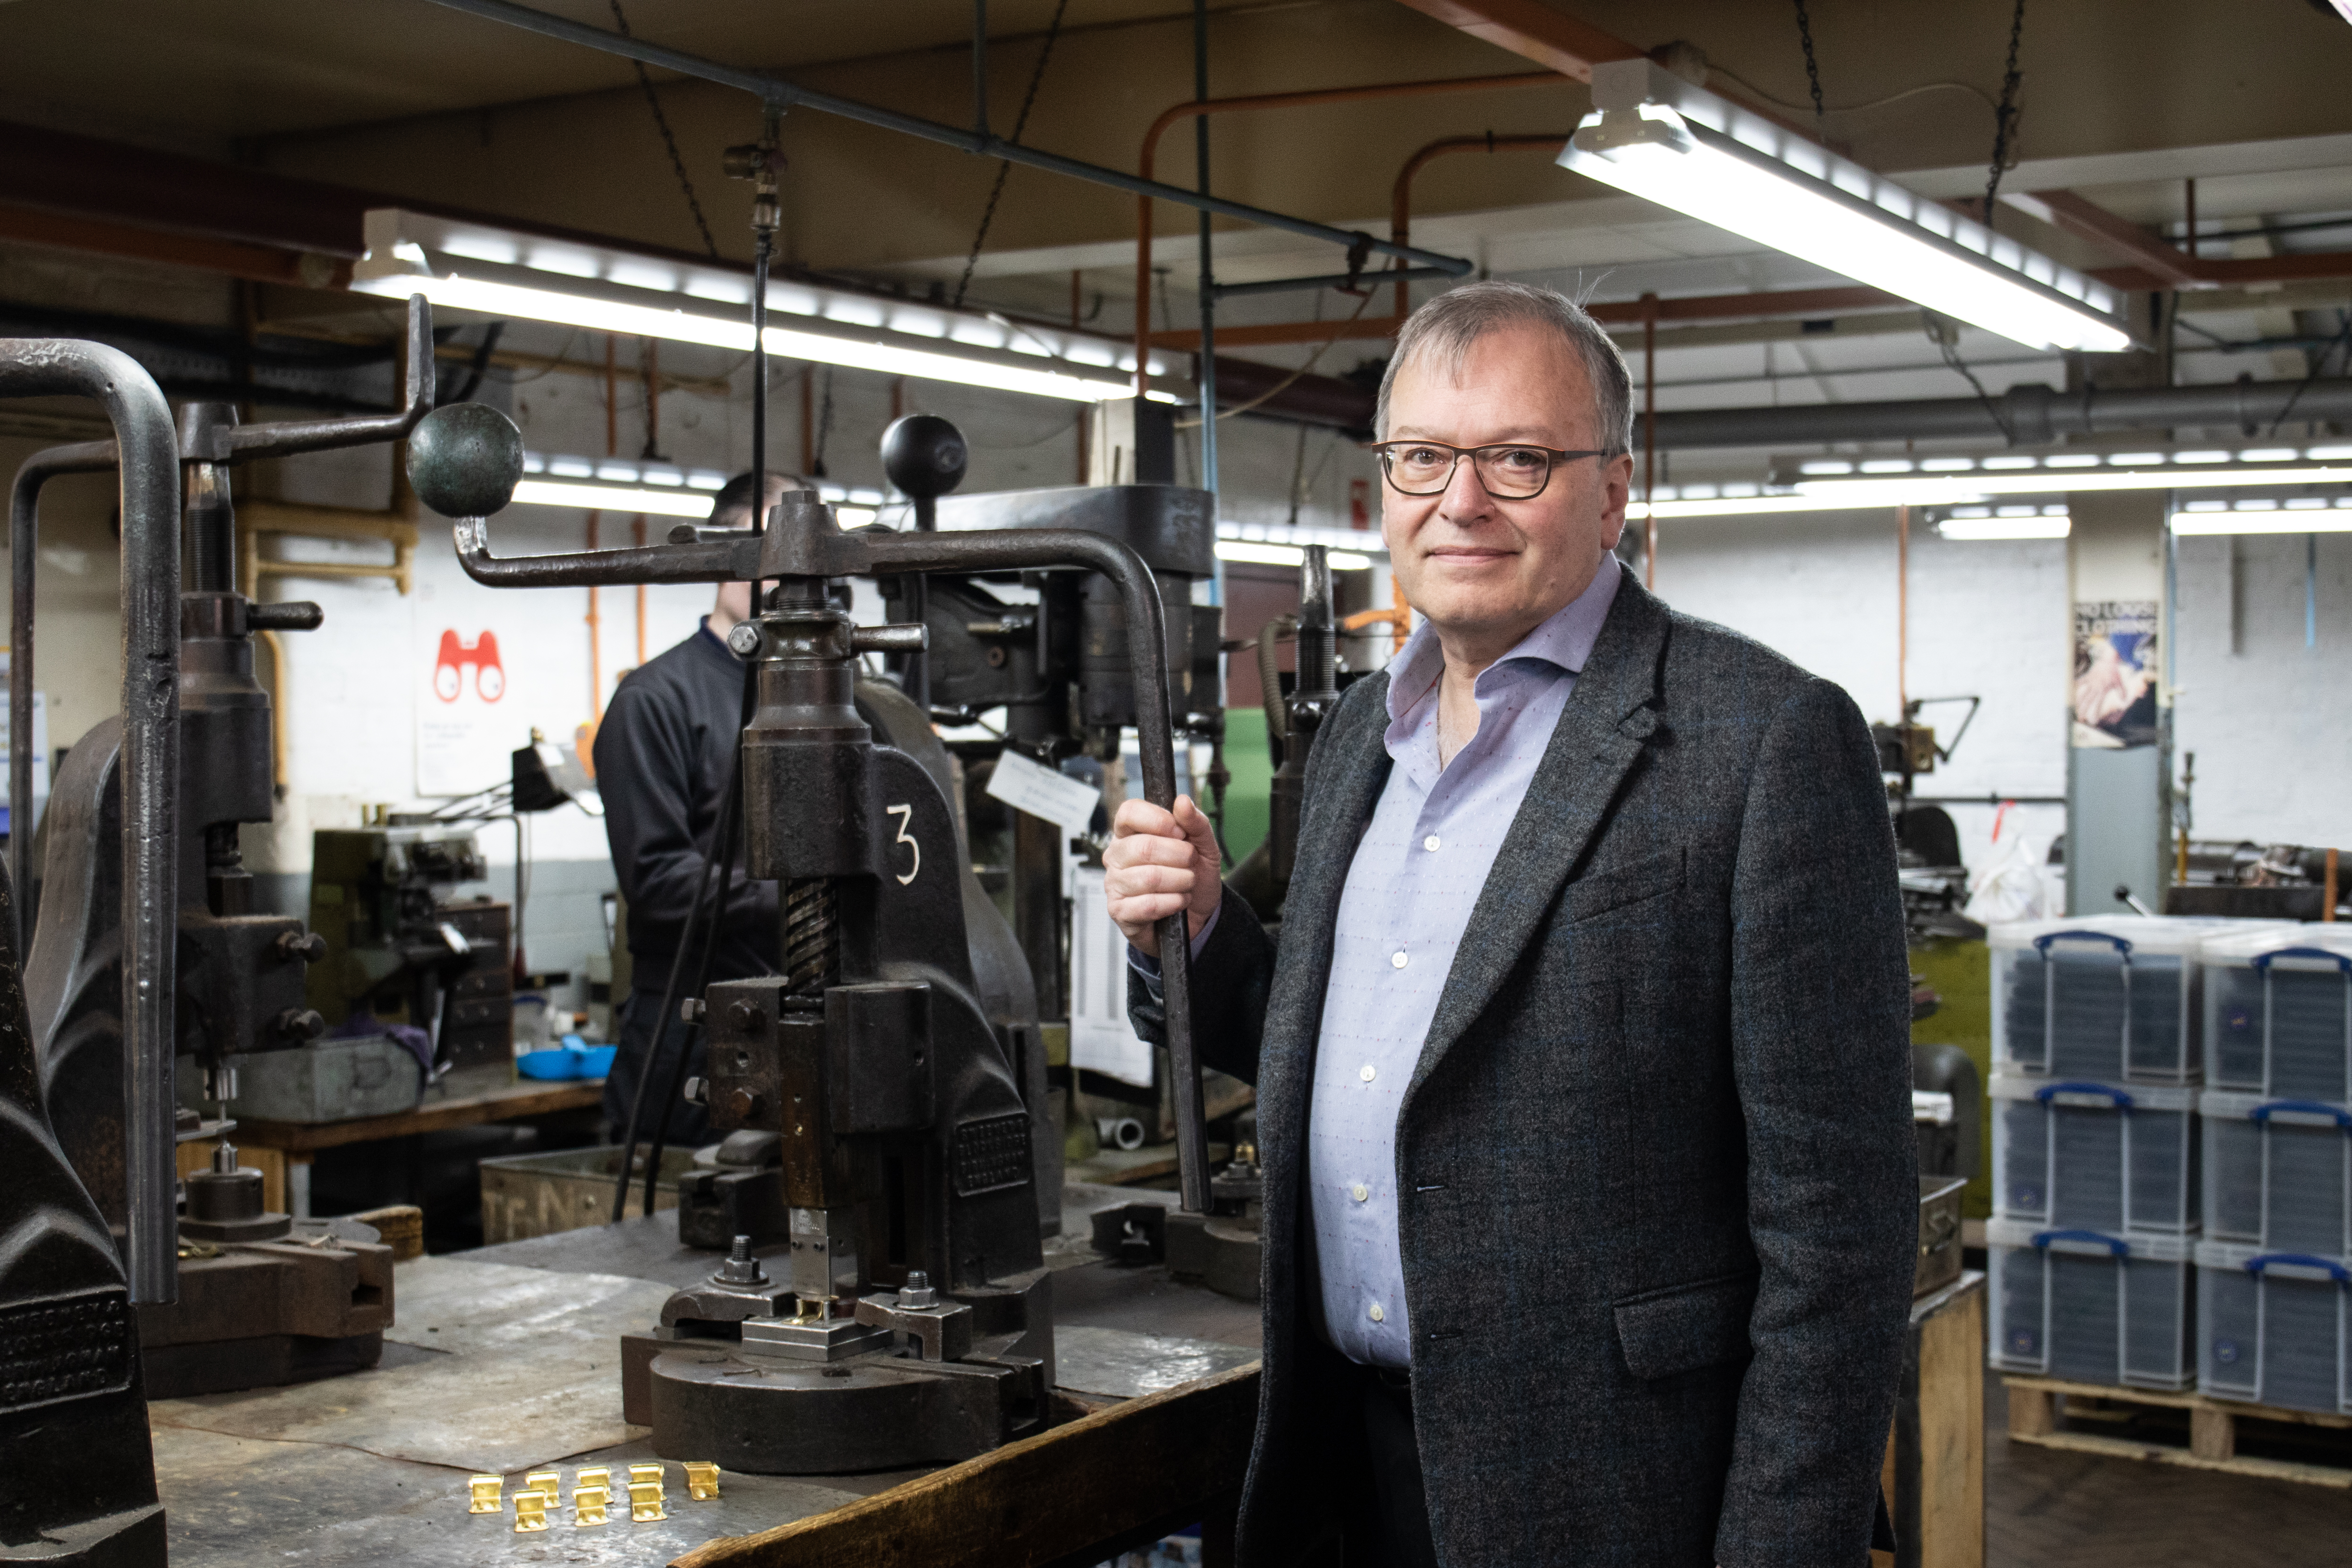 Simon Topman, Managing Director at ACME Whistles, stands next to the flypress used to create the ACME 470 Clicker.